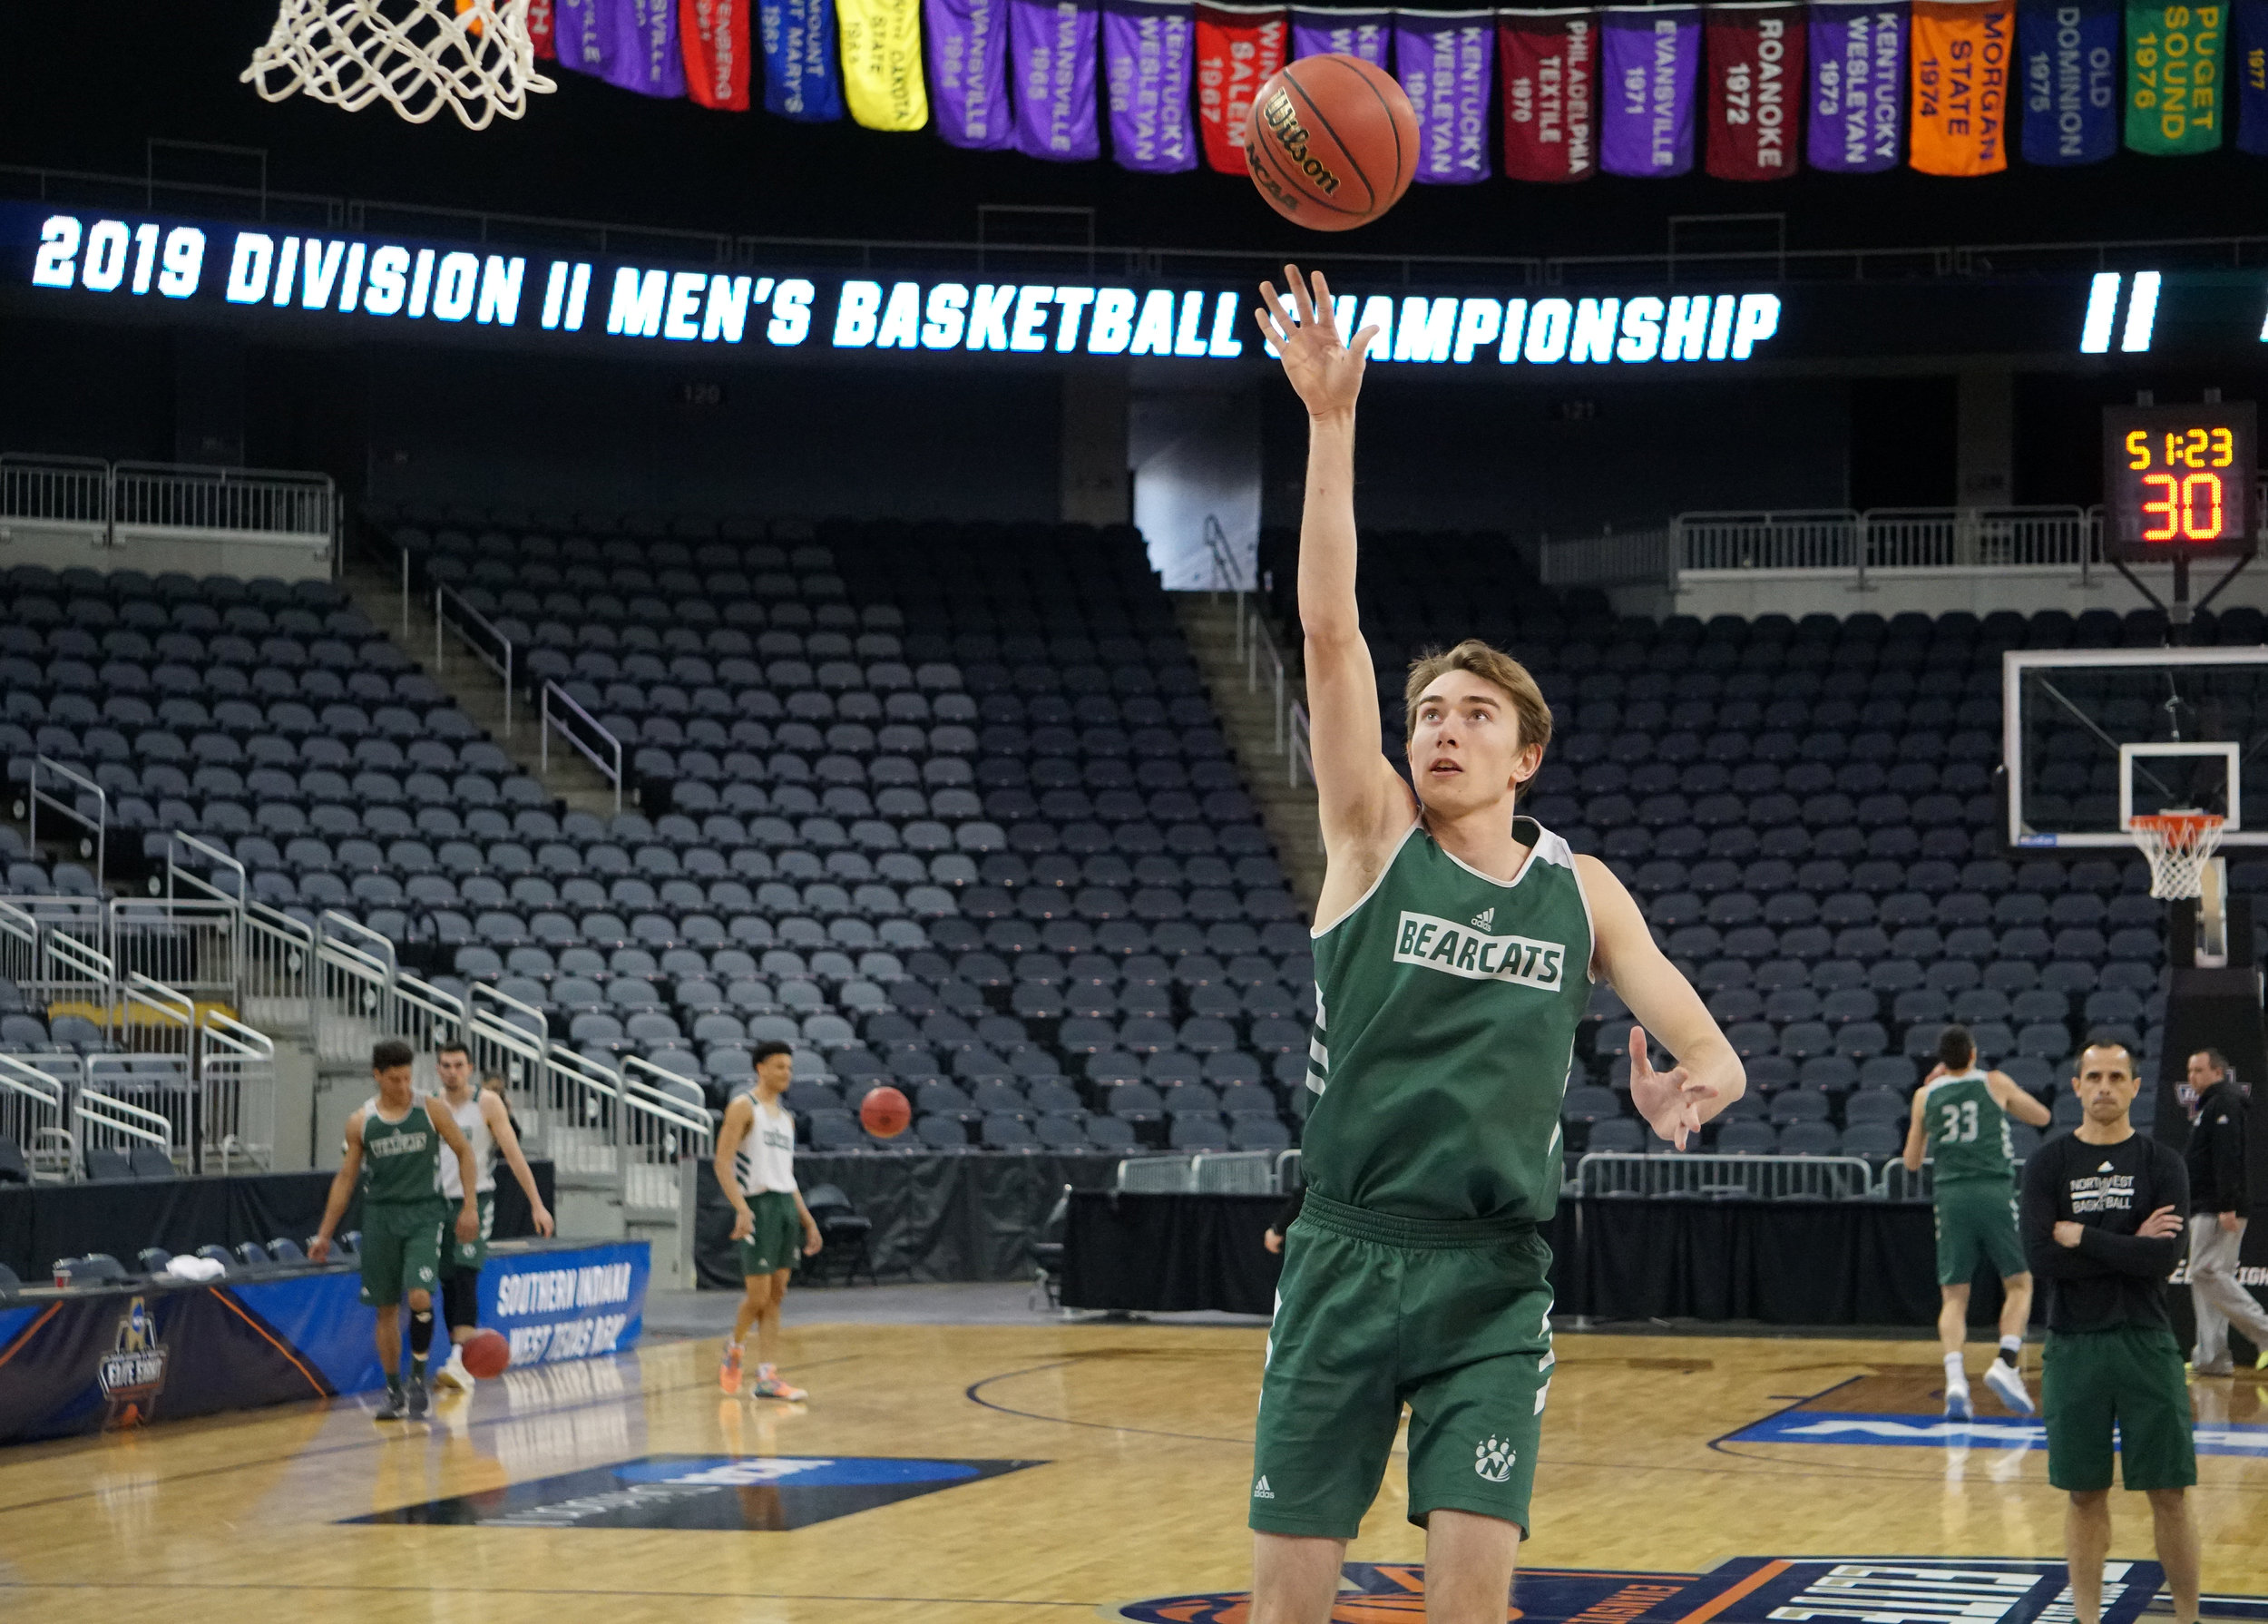 JON DYKSTRA/Maryville Daily Forum  Park Hill South graduate and Northwest Missouri State junior forward Ryan Welty puts up a shot during practice on Wednesday, March 27, at the Division II Elite Eight event in Evansville, Ind.